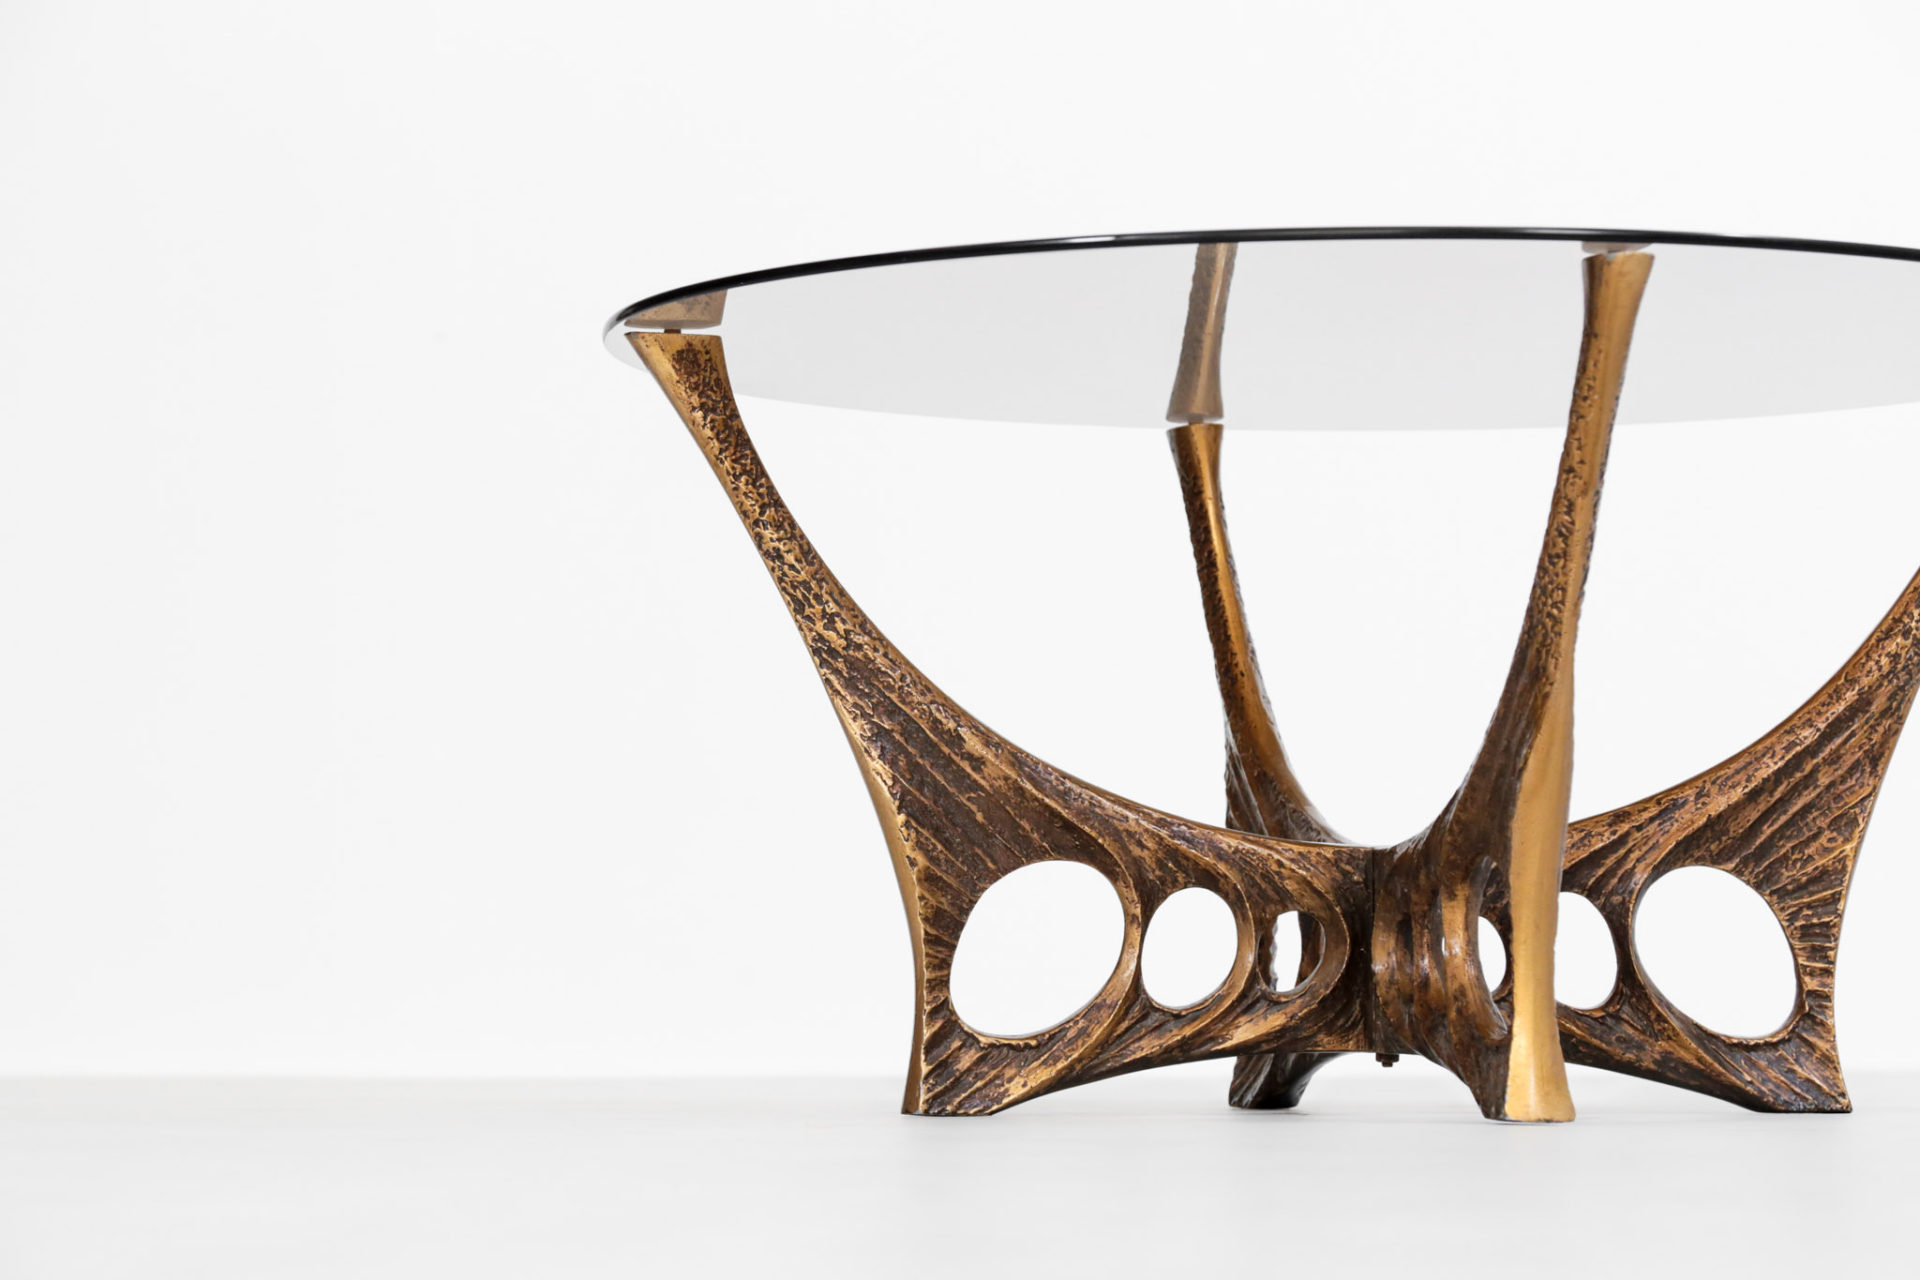 table basse willy ceysens belge design années 60 1960